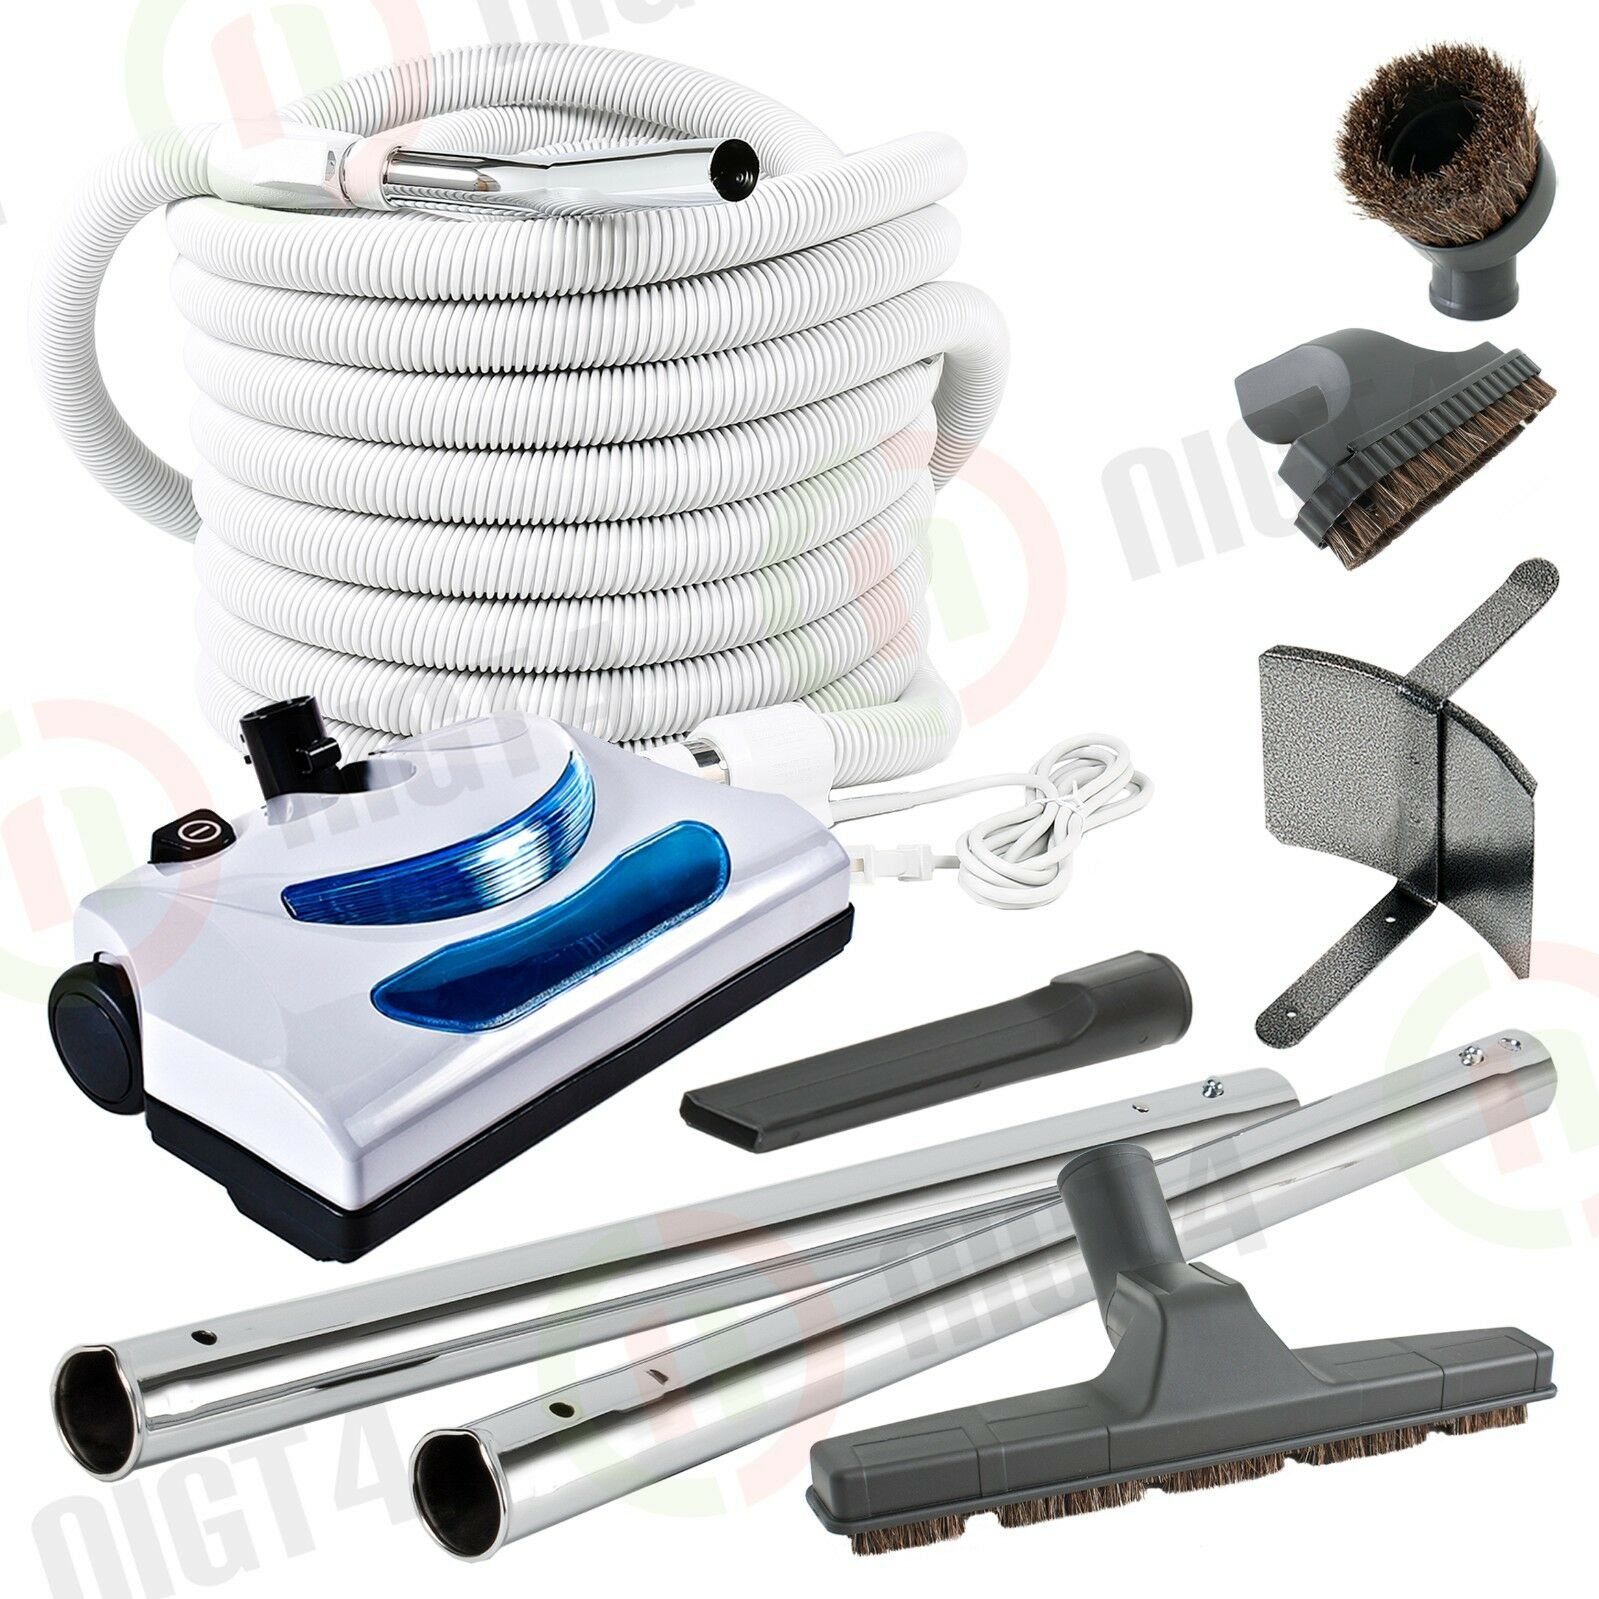 Electric Central Vacuum Powerhead 30'Pigtail Hose & Atachment Vac Kit-LONG LIFE